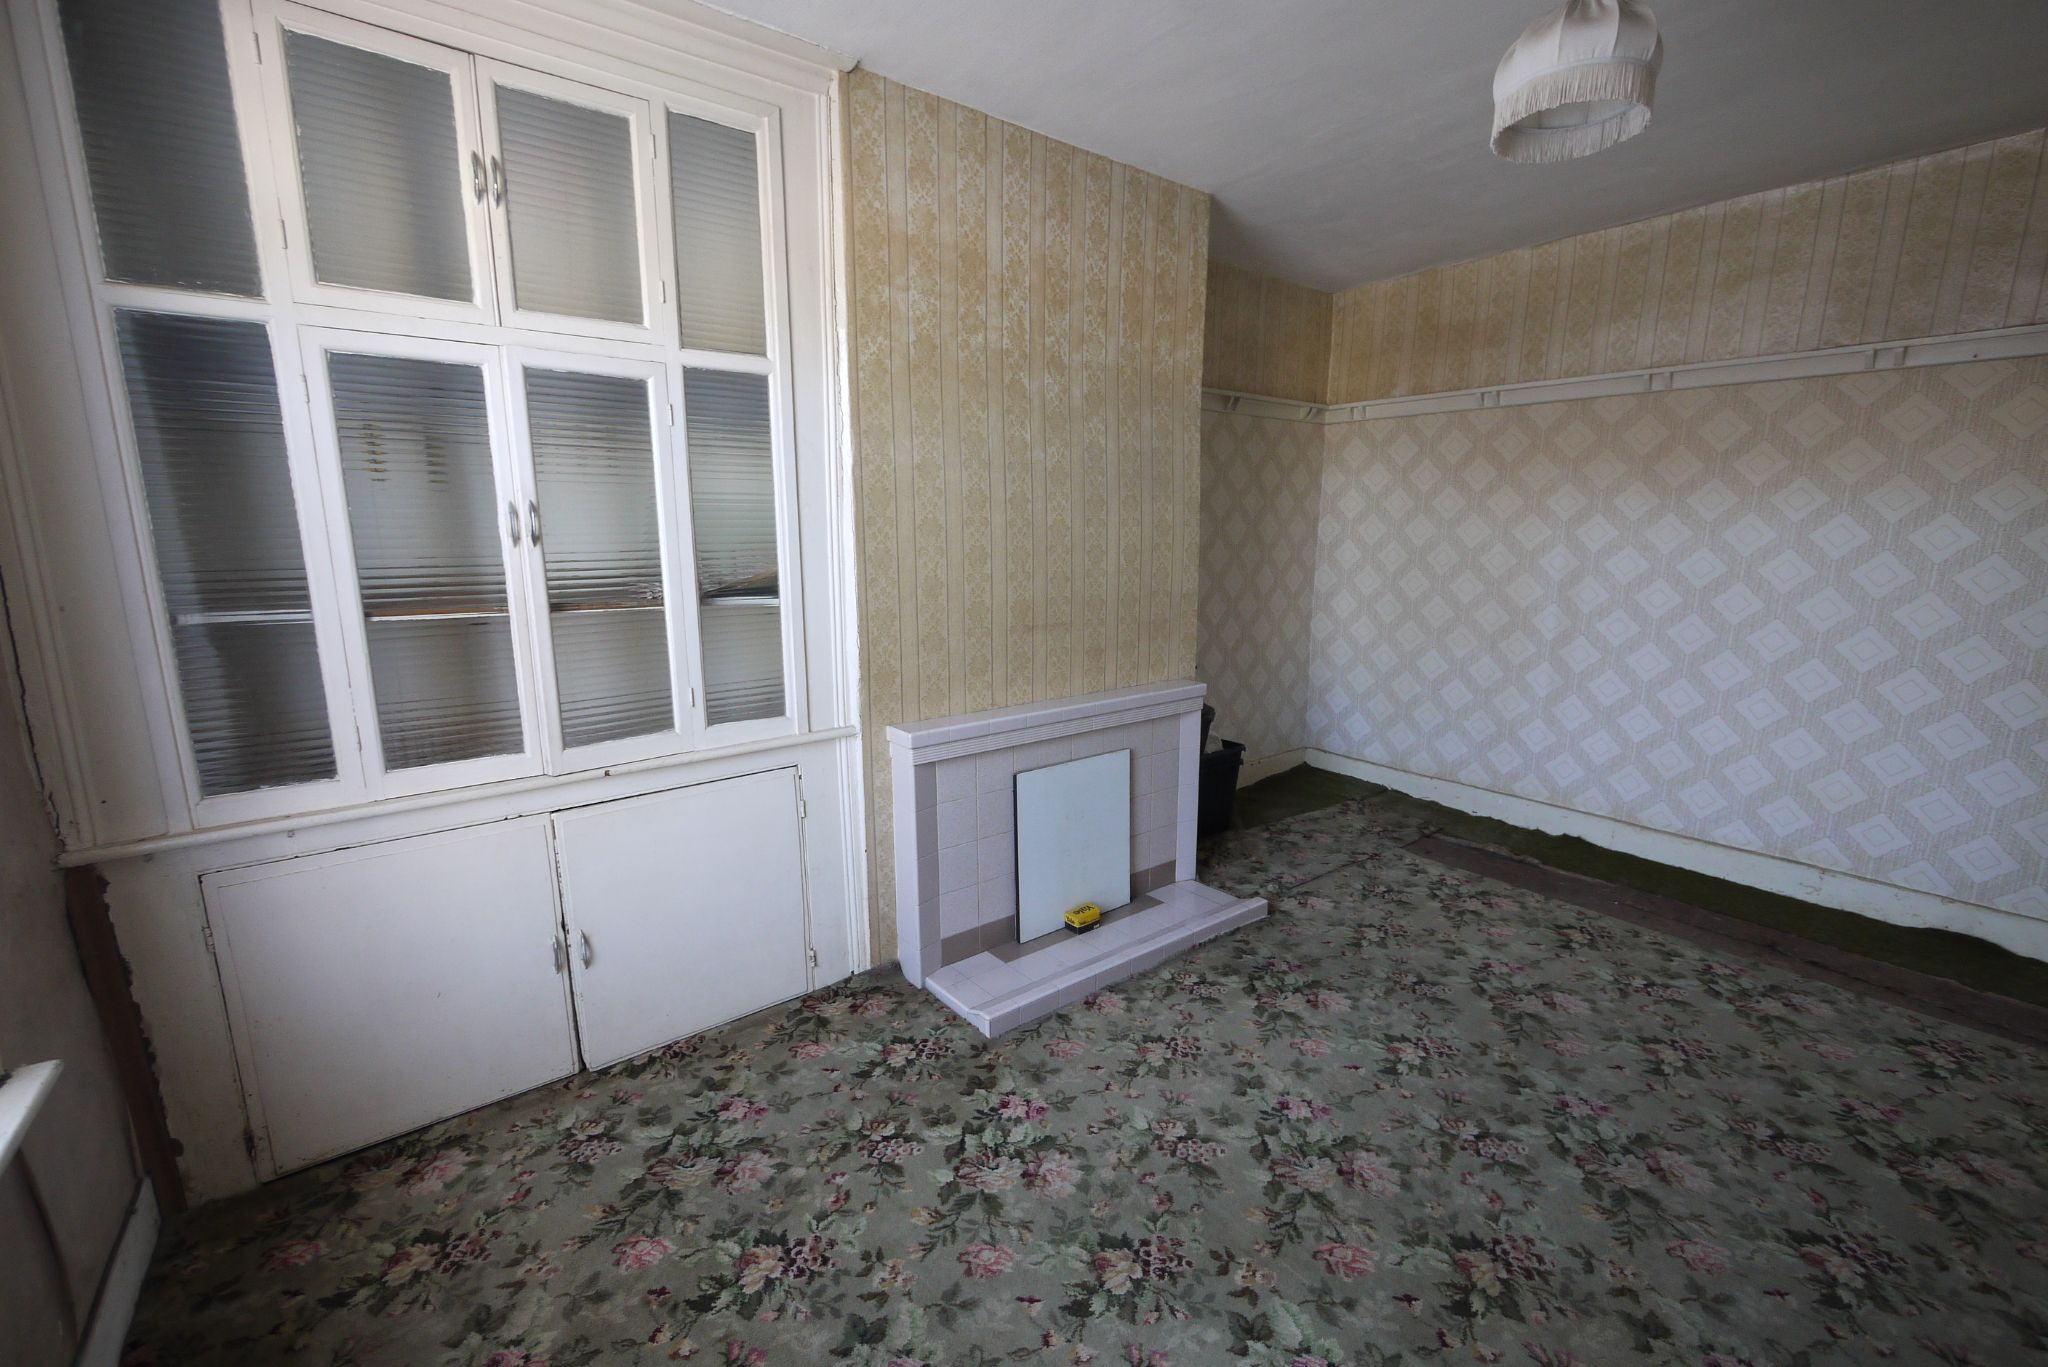 1 bedroom end terraced house SSTC in Brighouse - Lounge.